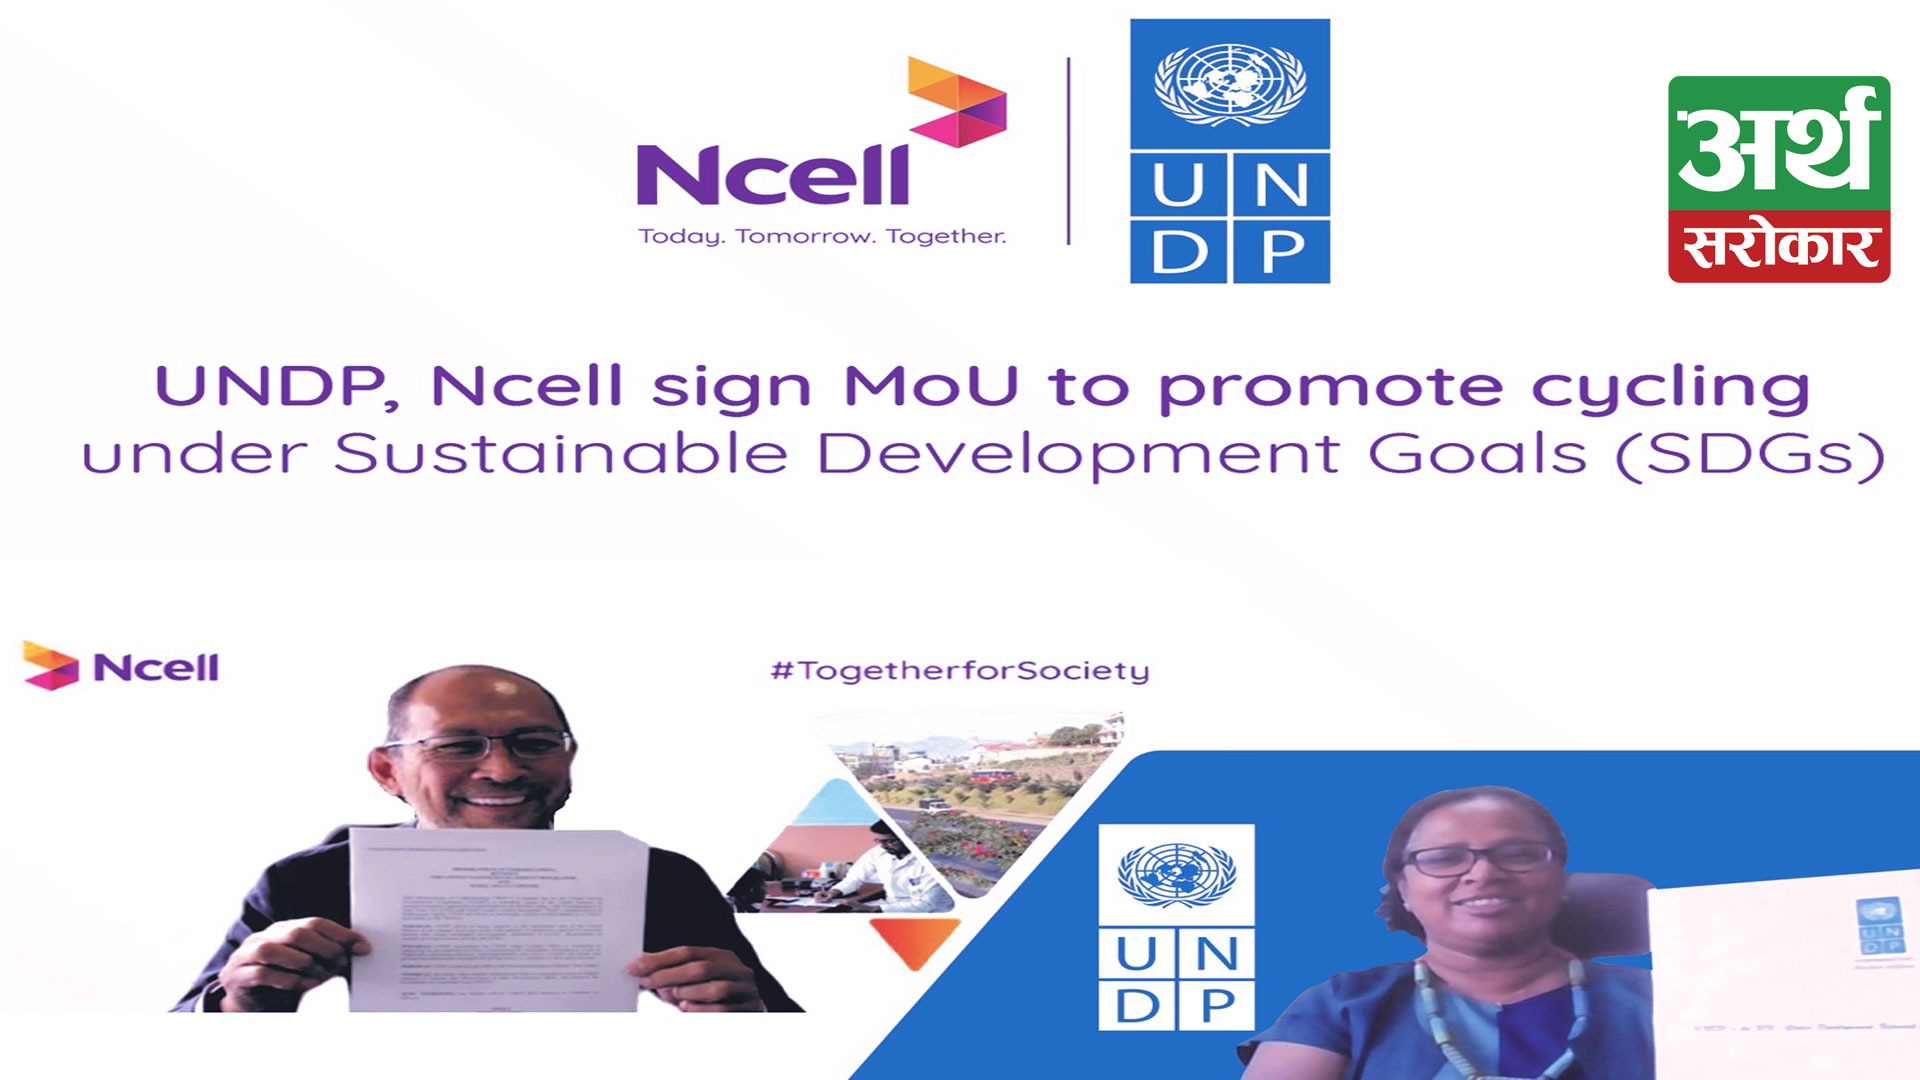 UNDP and Ncell partner for sustainable development in Nepal